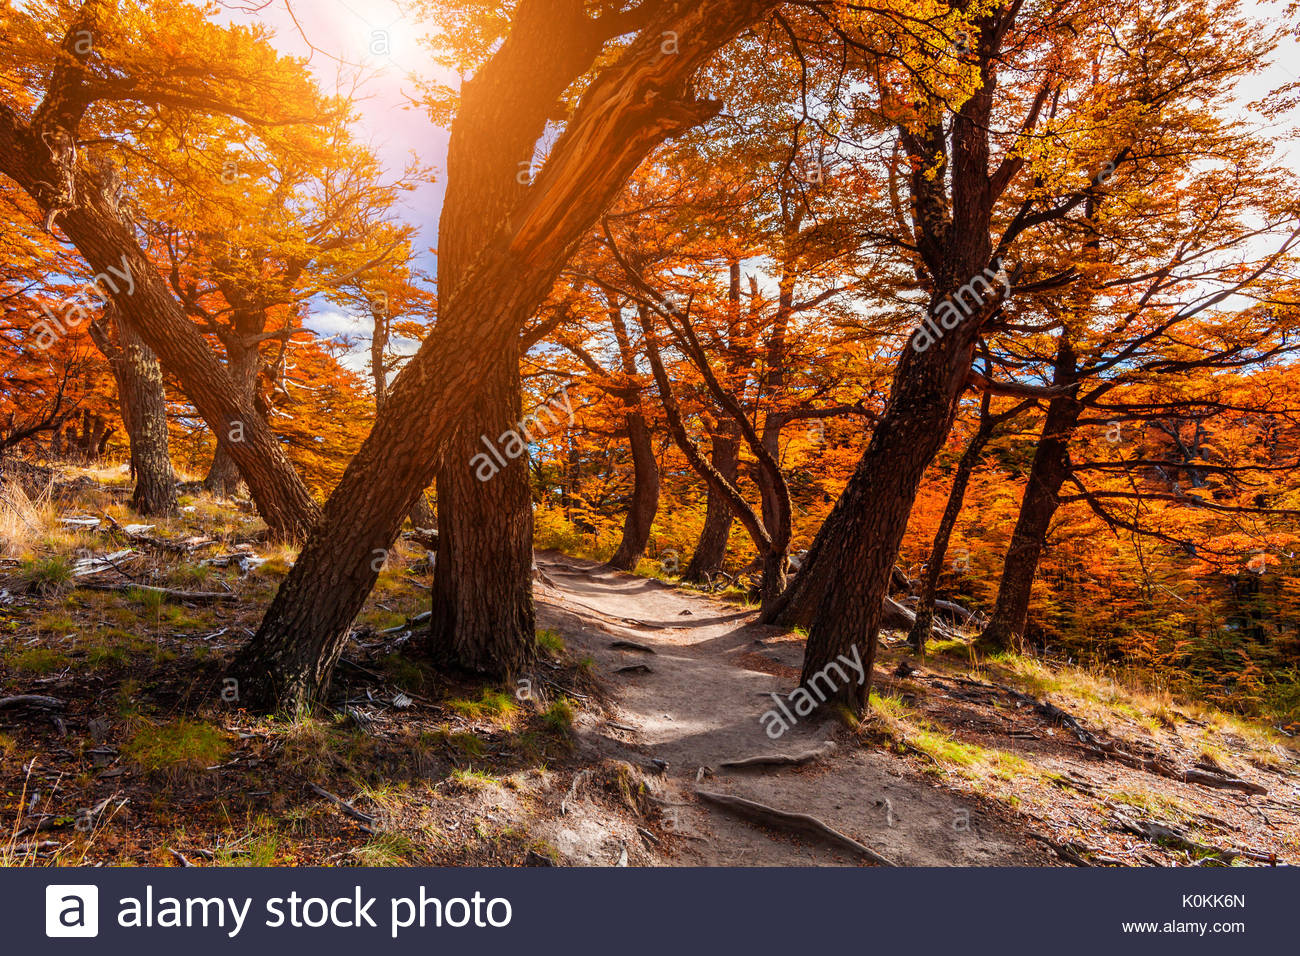 Path in the autumn forest. Patagonia, Argentina - Stock Image